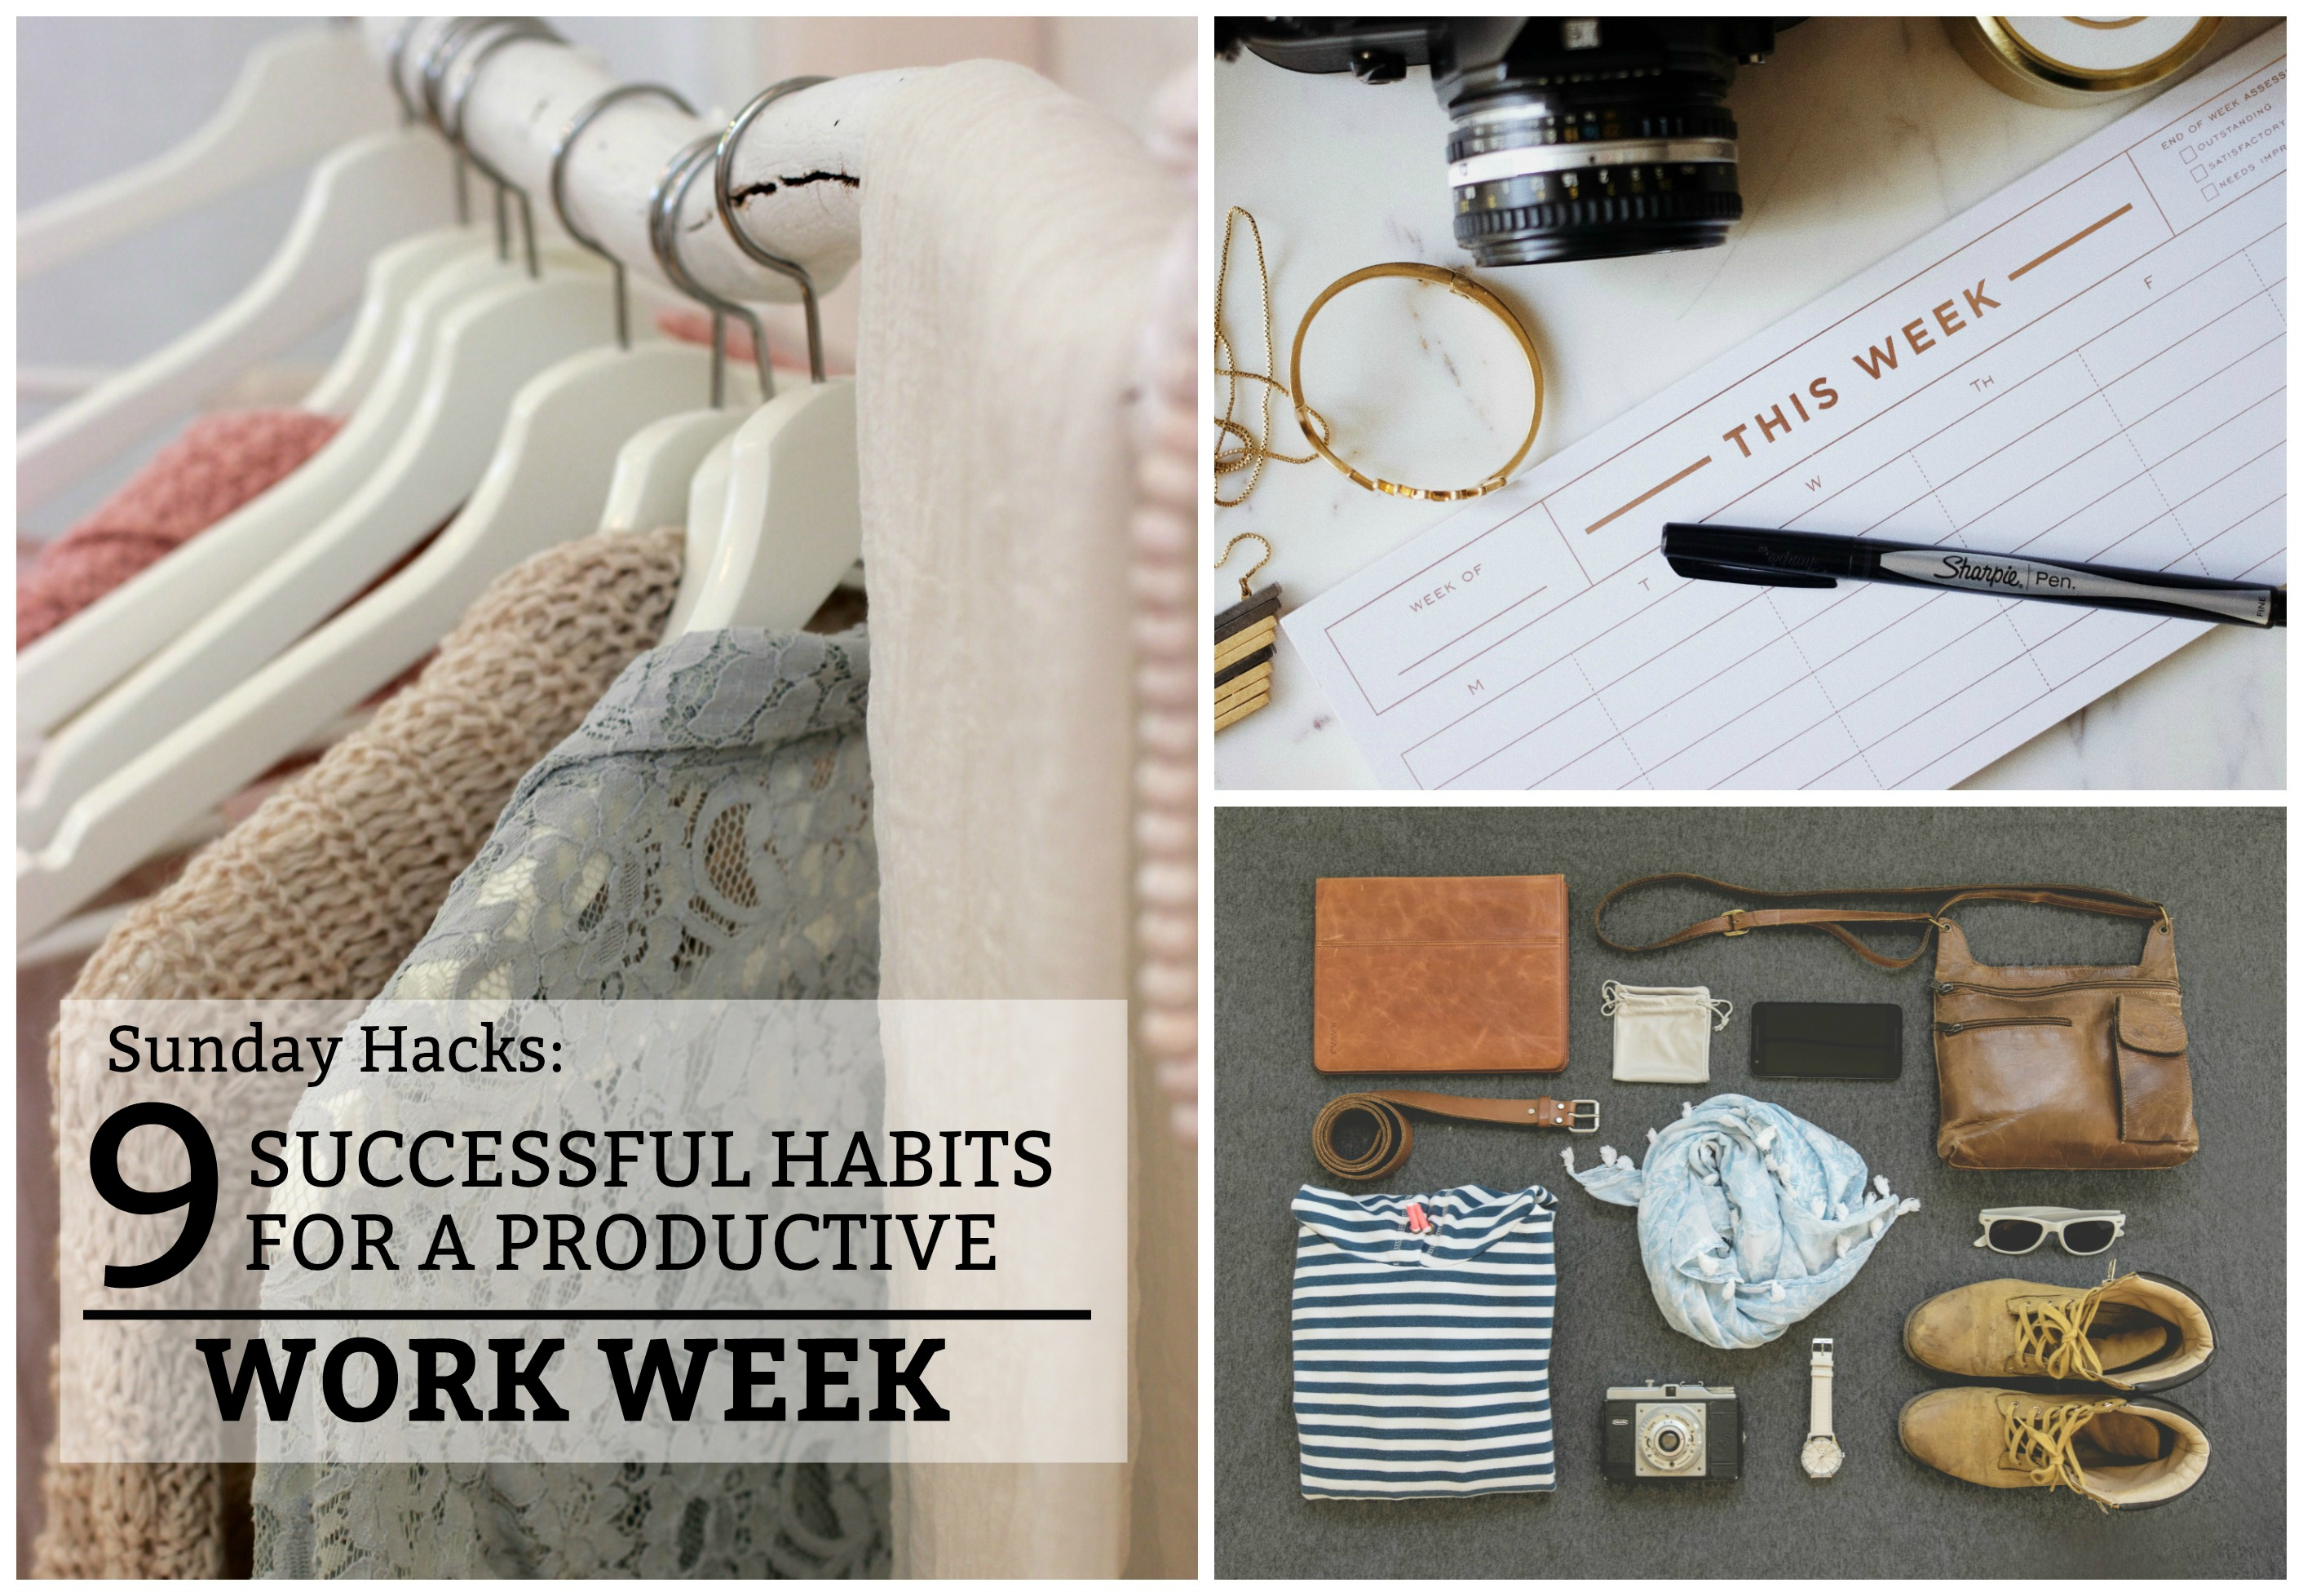 9 Successful Habits for a Productive Work Week - a Sunday to-do list to make your work week easier and more productive. www.tradingaverage.com